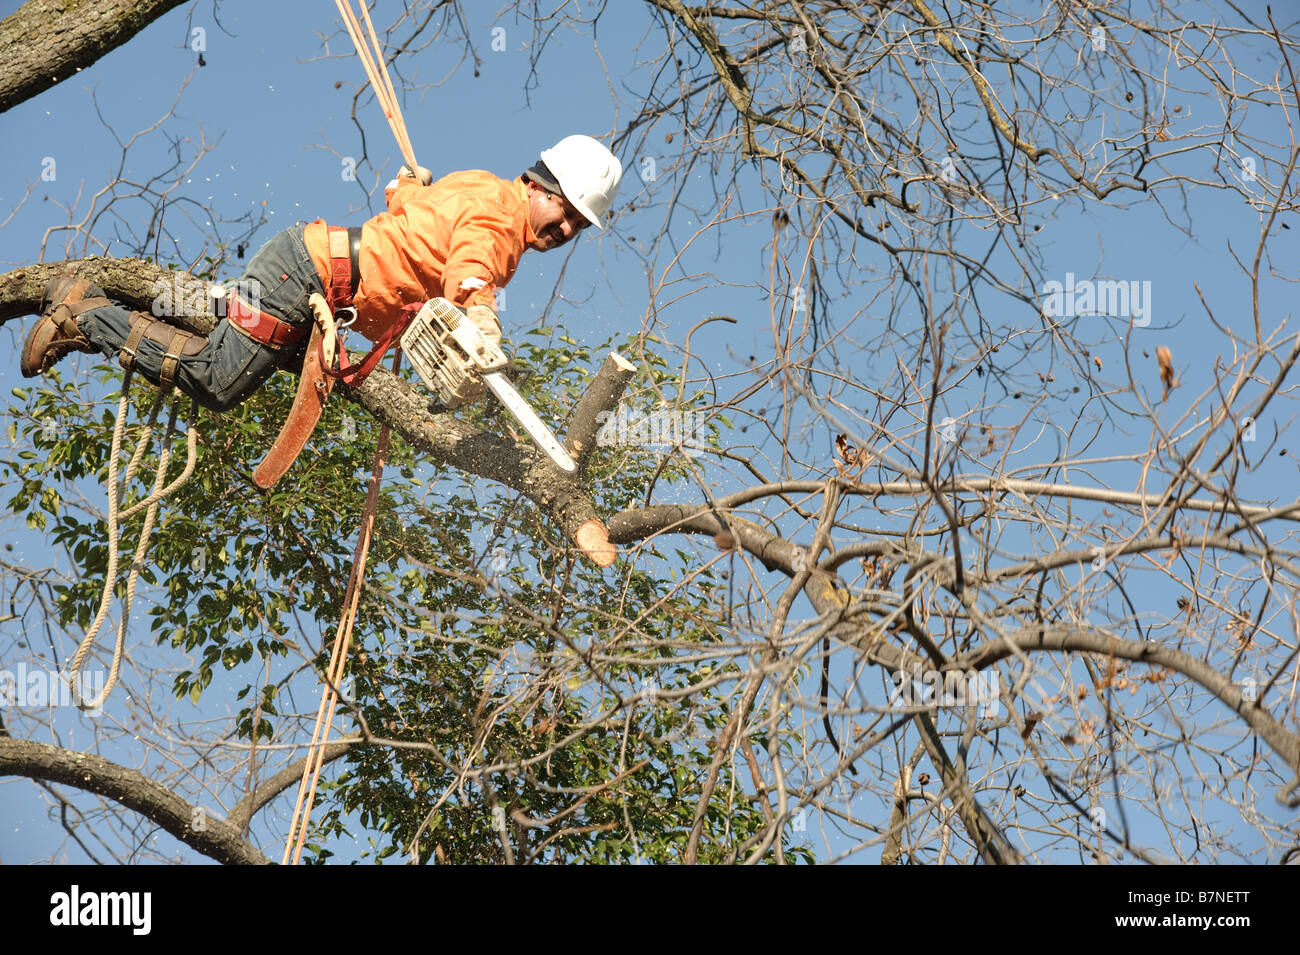 Lumberjacks chopping down a tree - Stock Image